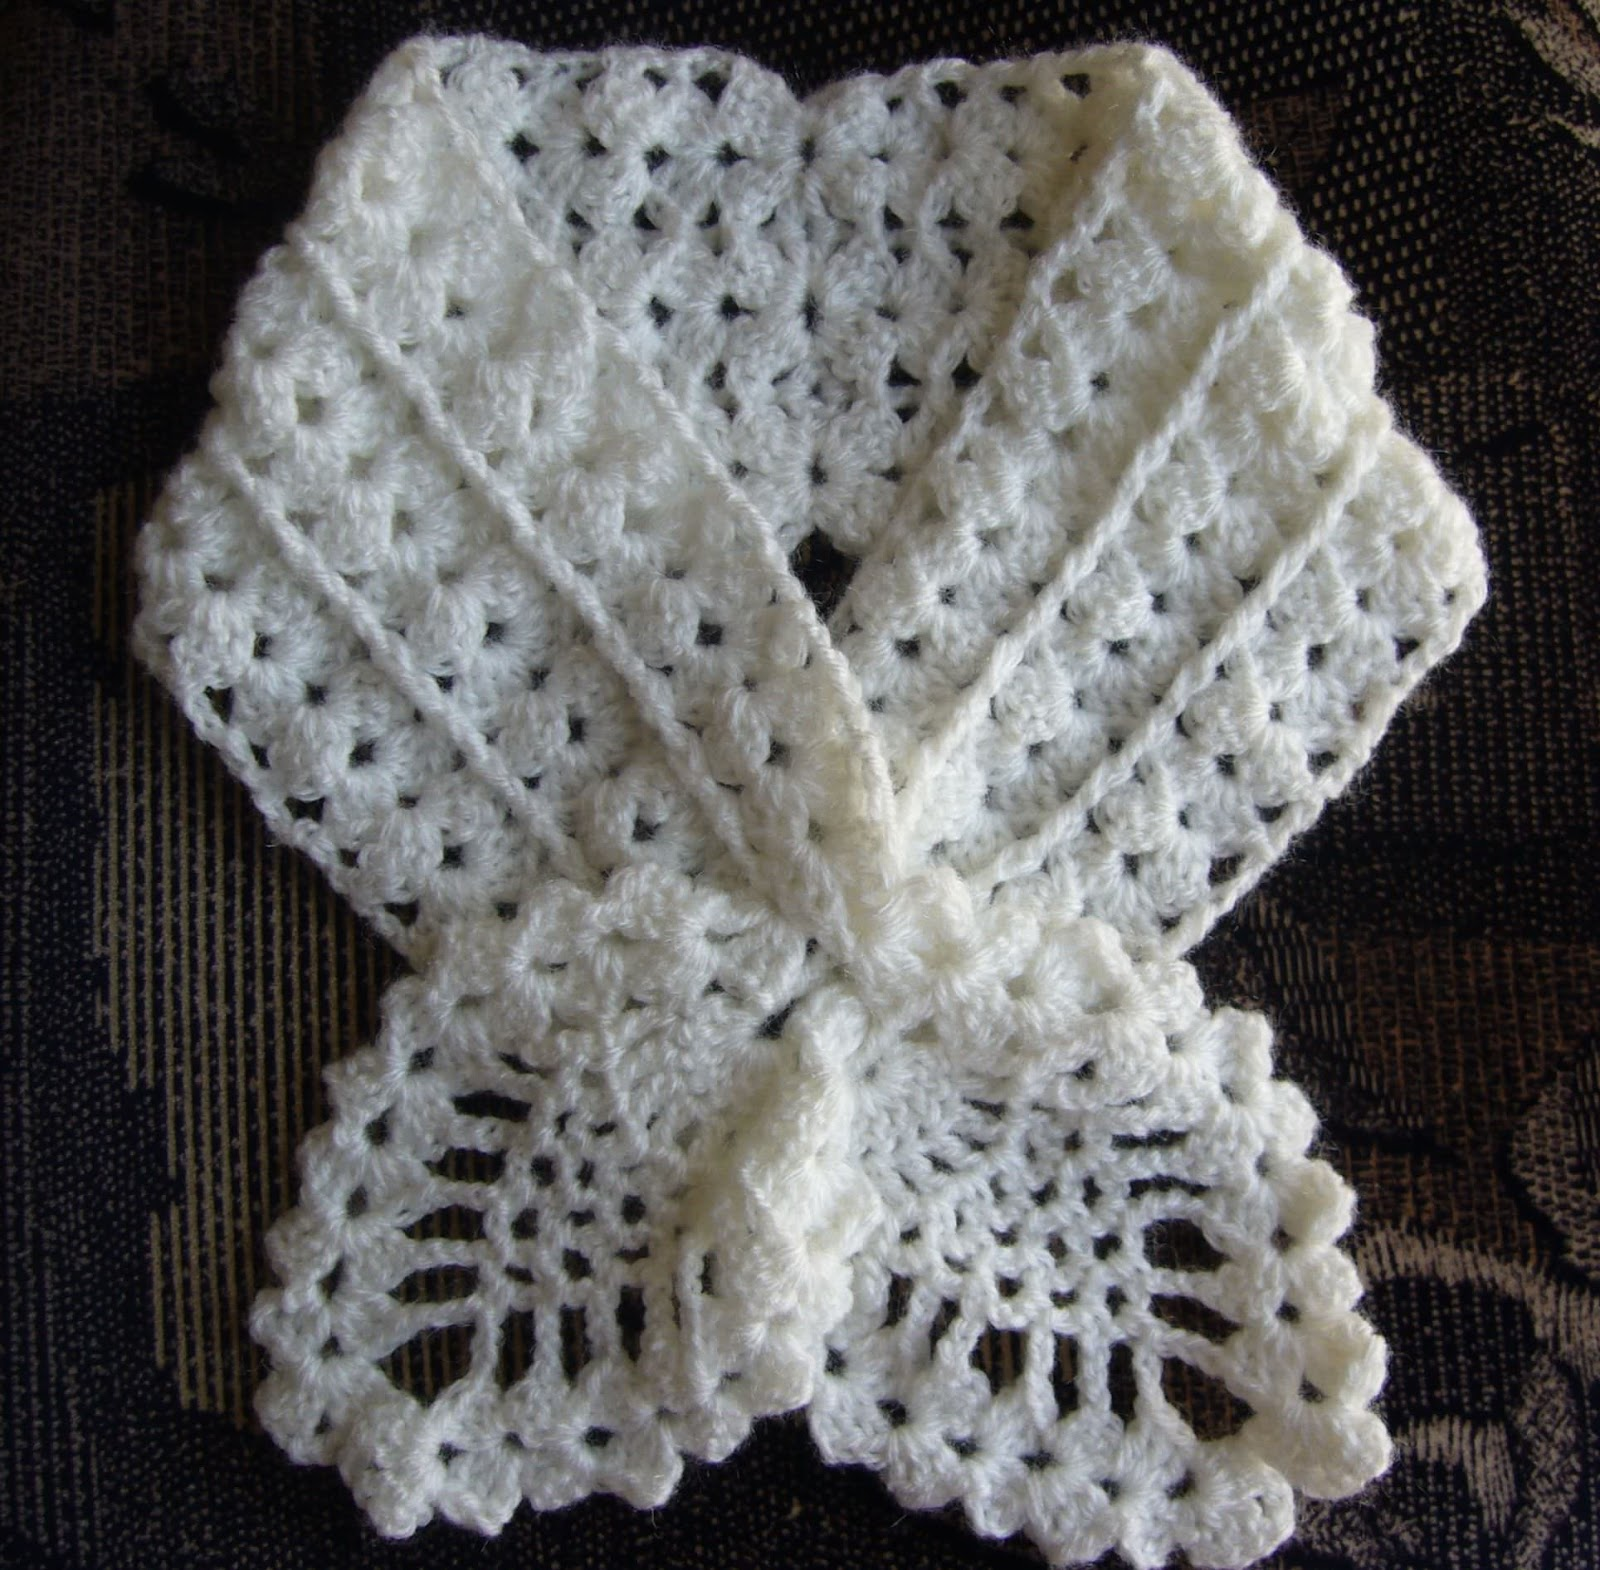 Crochet Patterns Neck Scarves : loved this pattern. It is so feminine and delicate. The scarf pattern ...